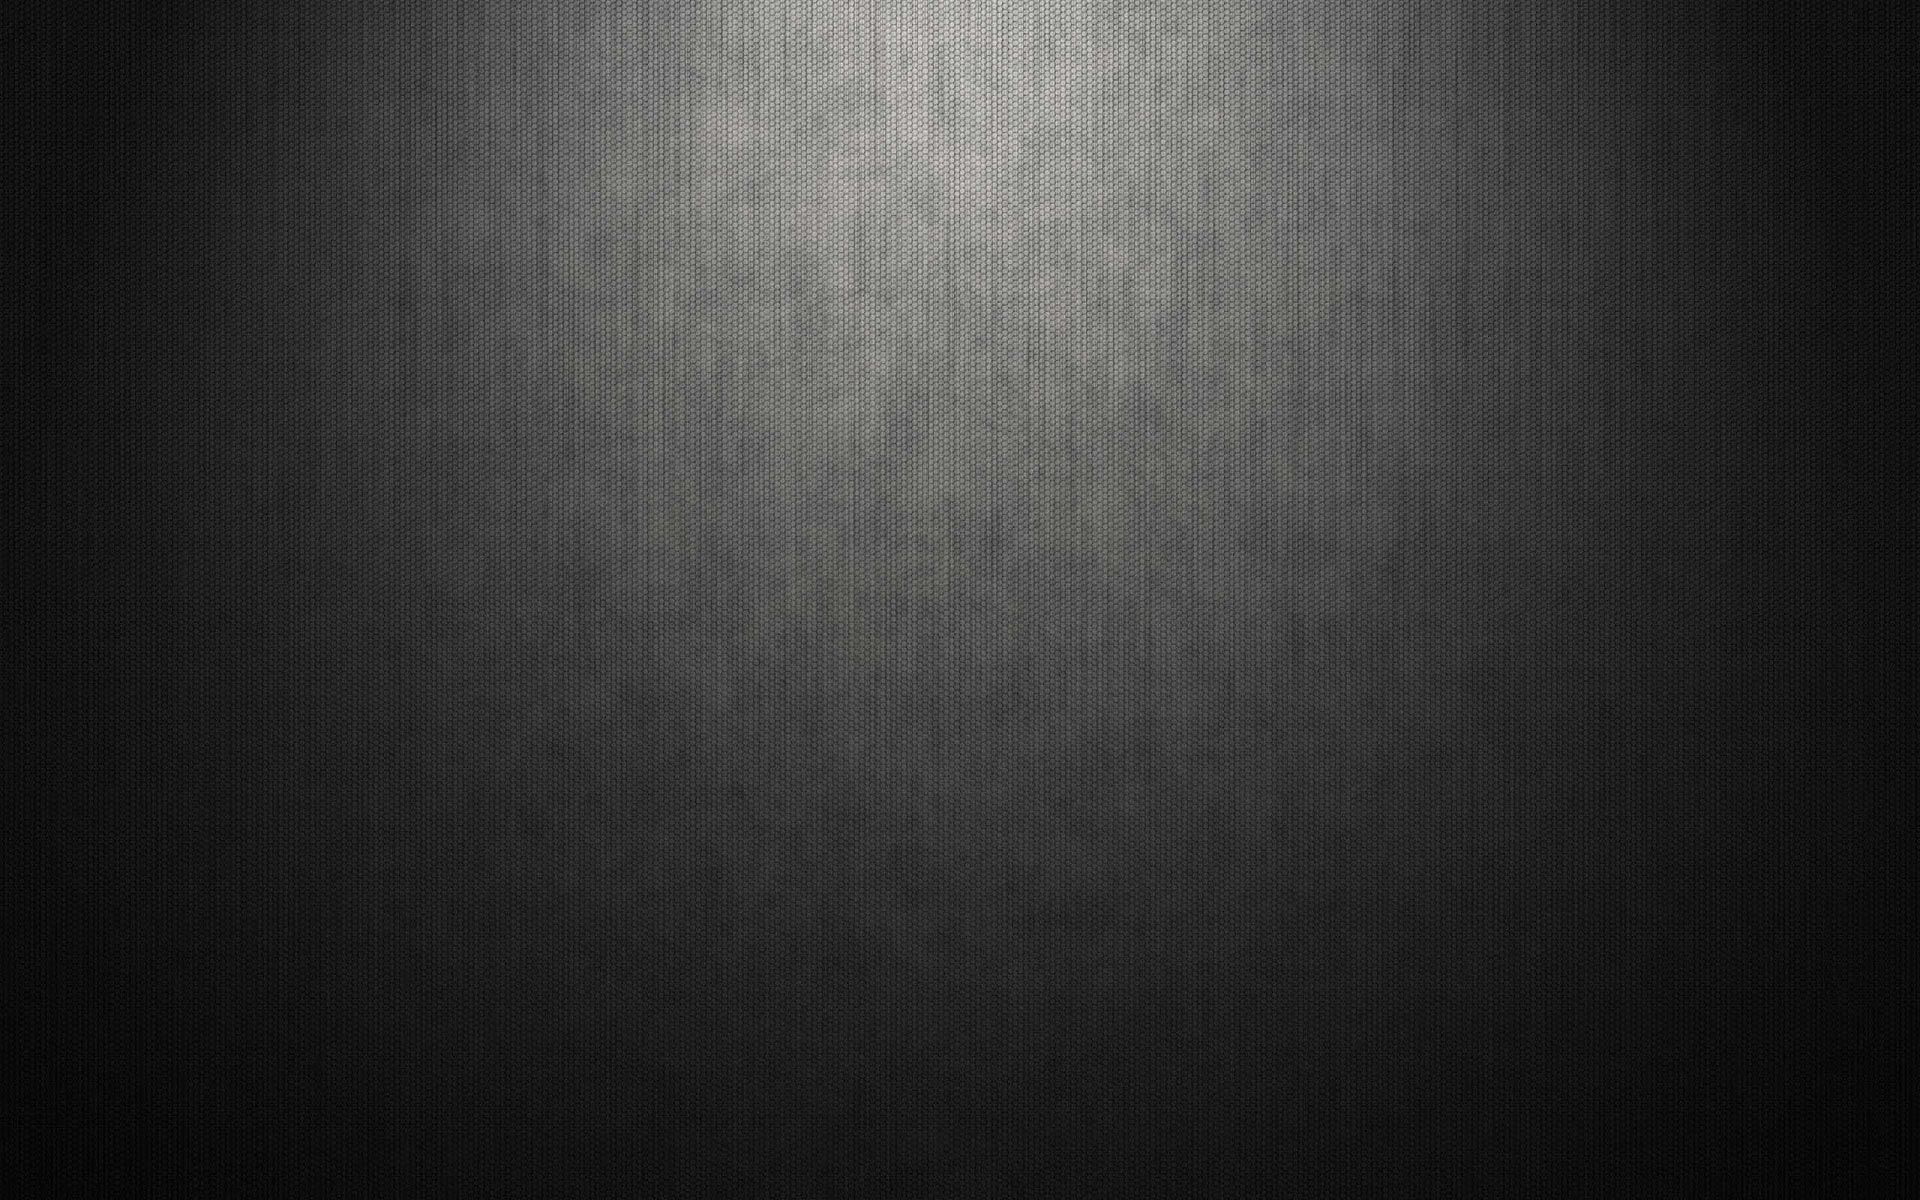 cool gray background HD Grey wallpaper background, Grey